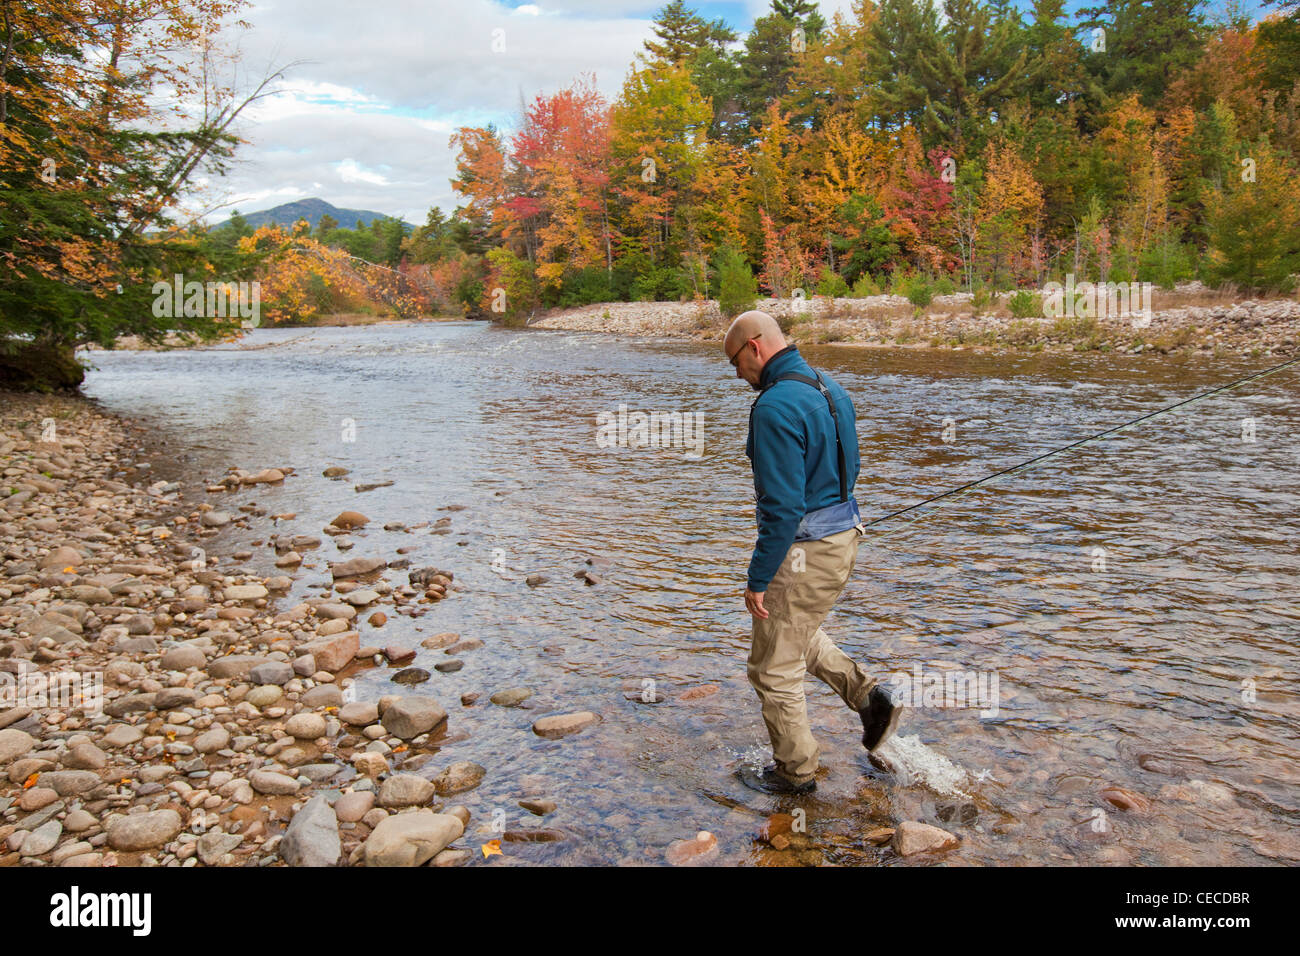 A Man Fly Fishing On The Swift River In Albany New